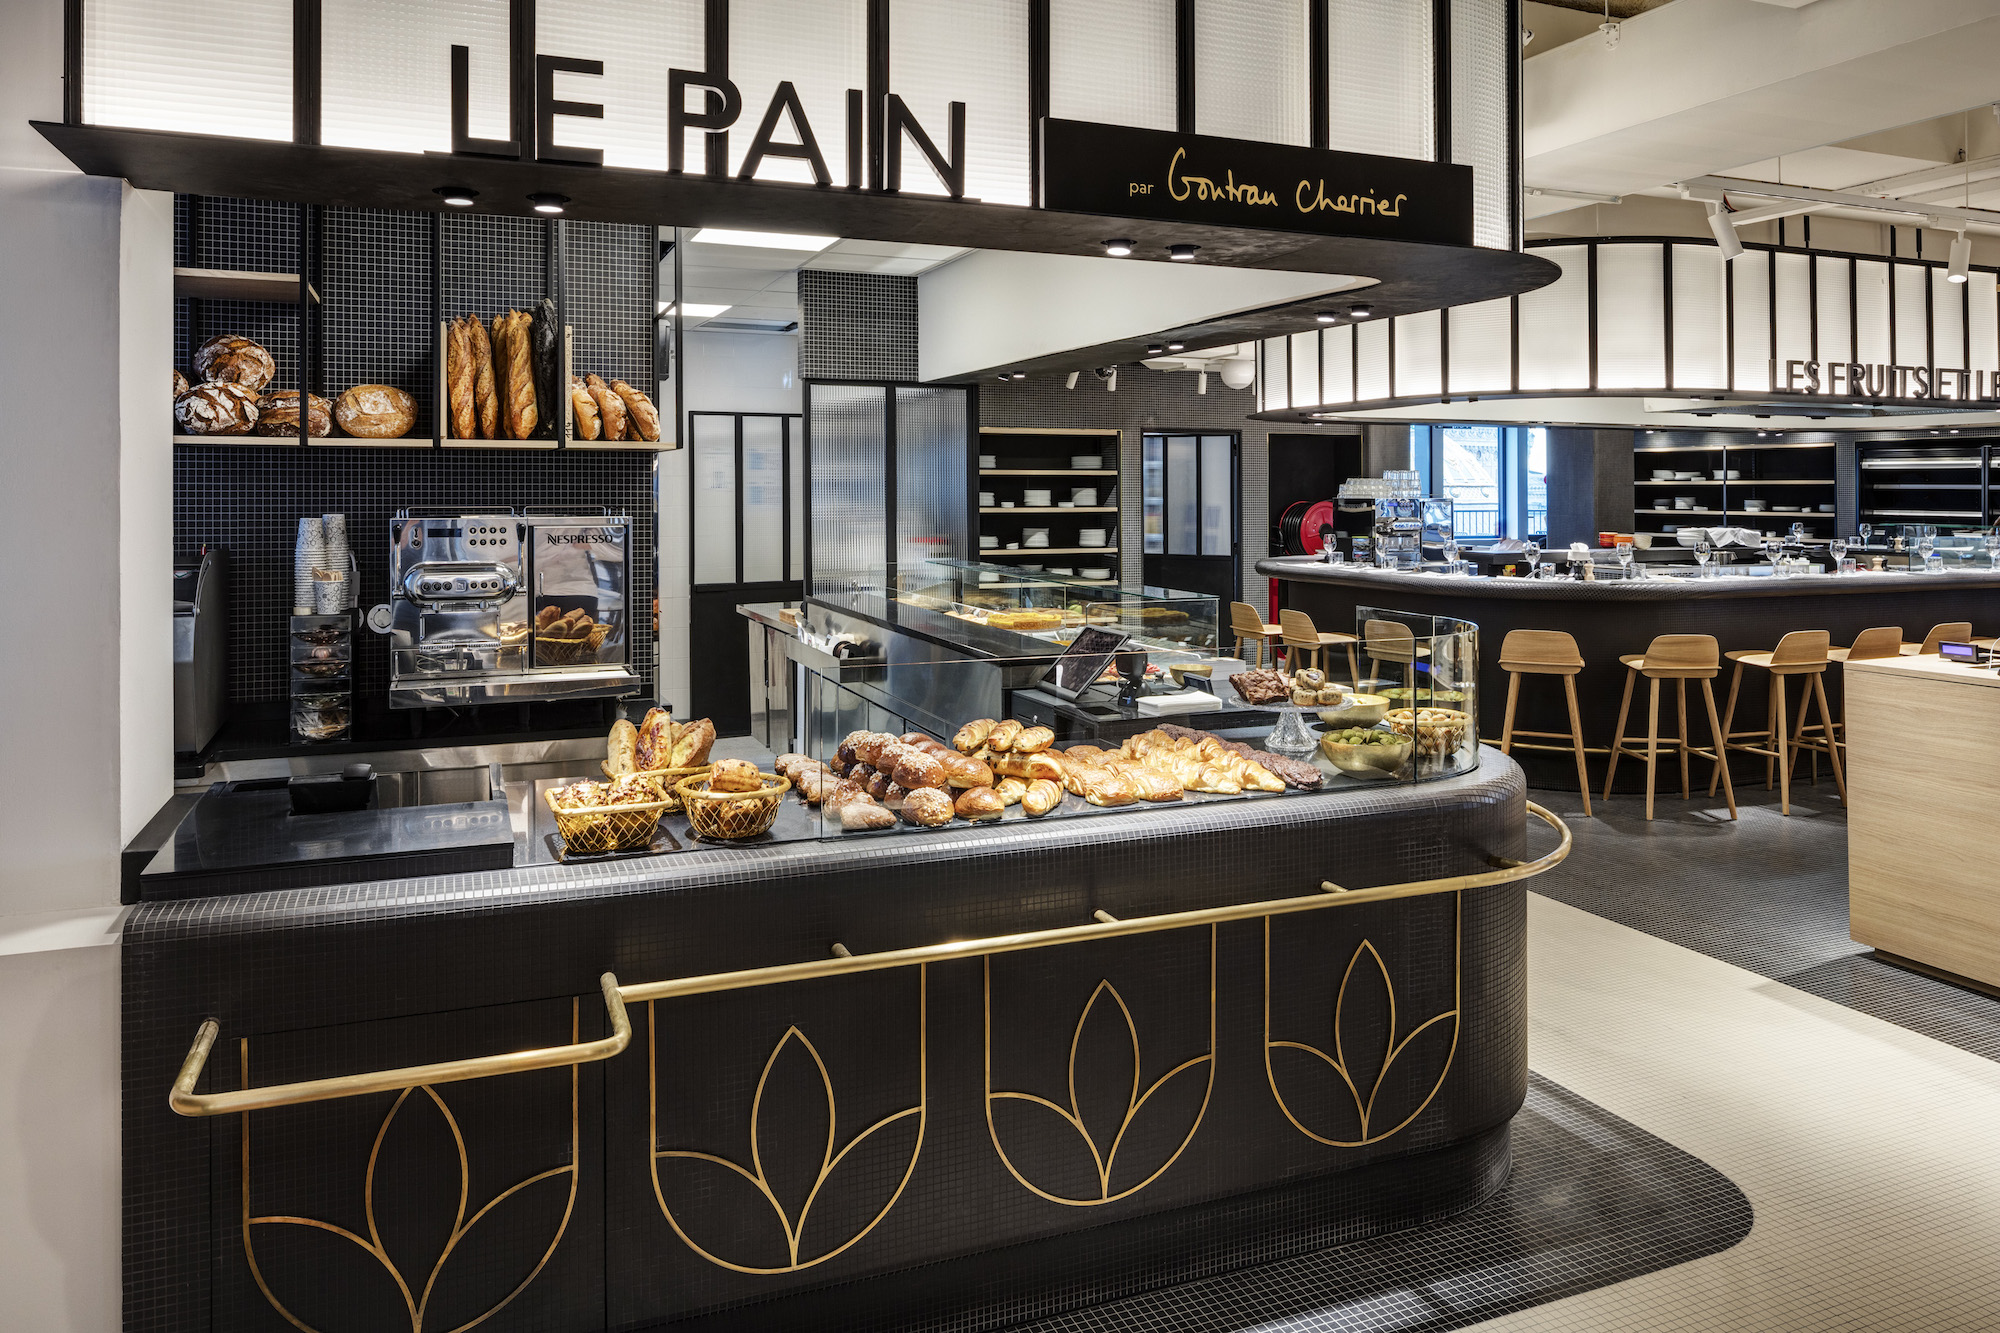 The Gontran Charrier bakery at Paris foodie shopping mall Printemps du Gout.